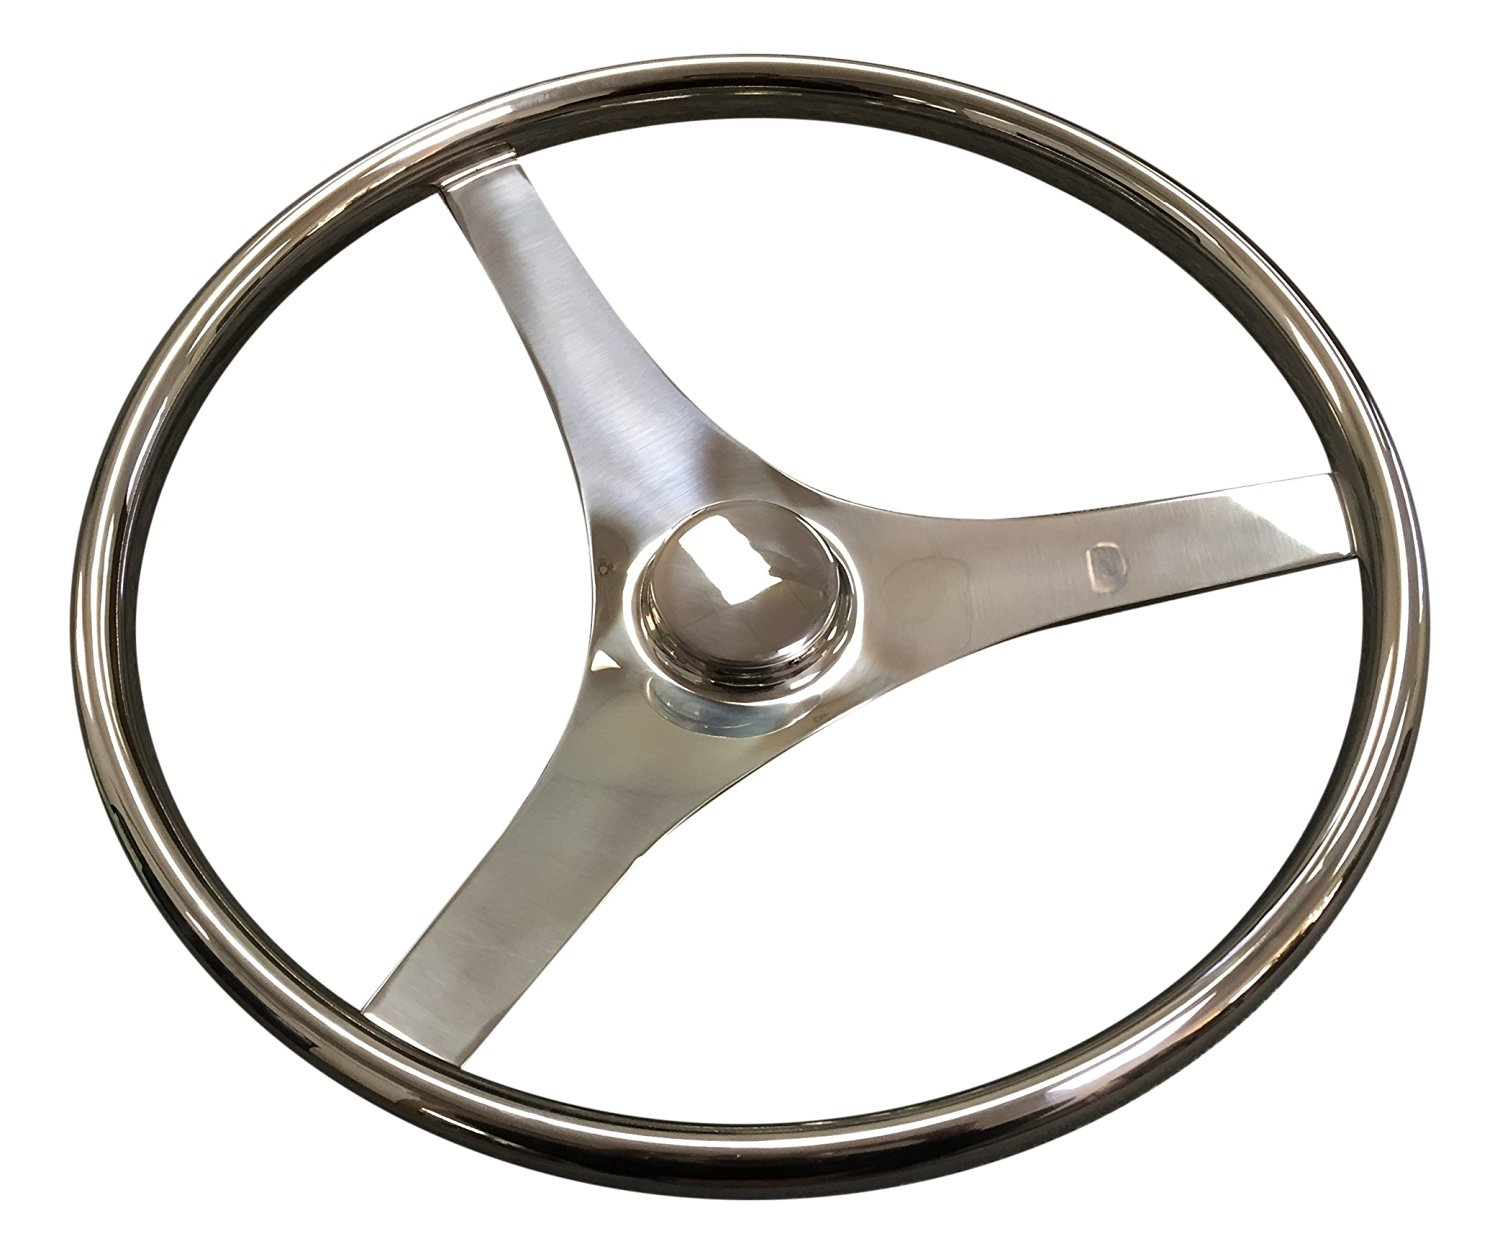 "Pactrade Marine Boat Durable 3 Flat Spoke Stainless Steel Sports Steering Wheel, 15-1/2""L"